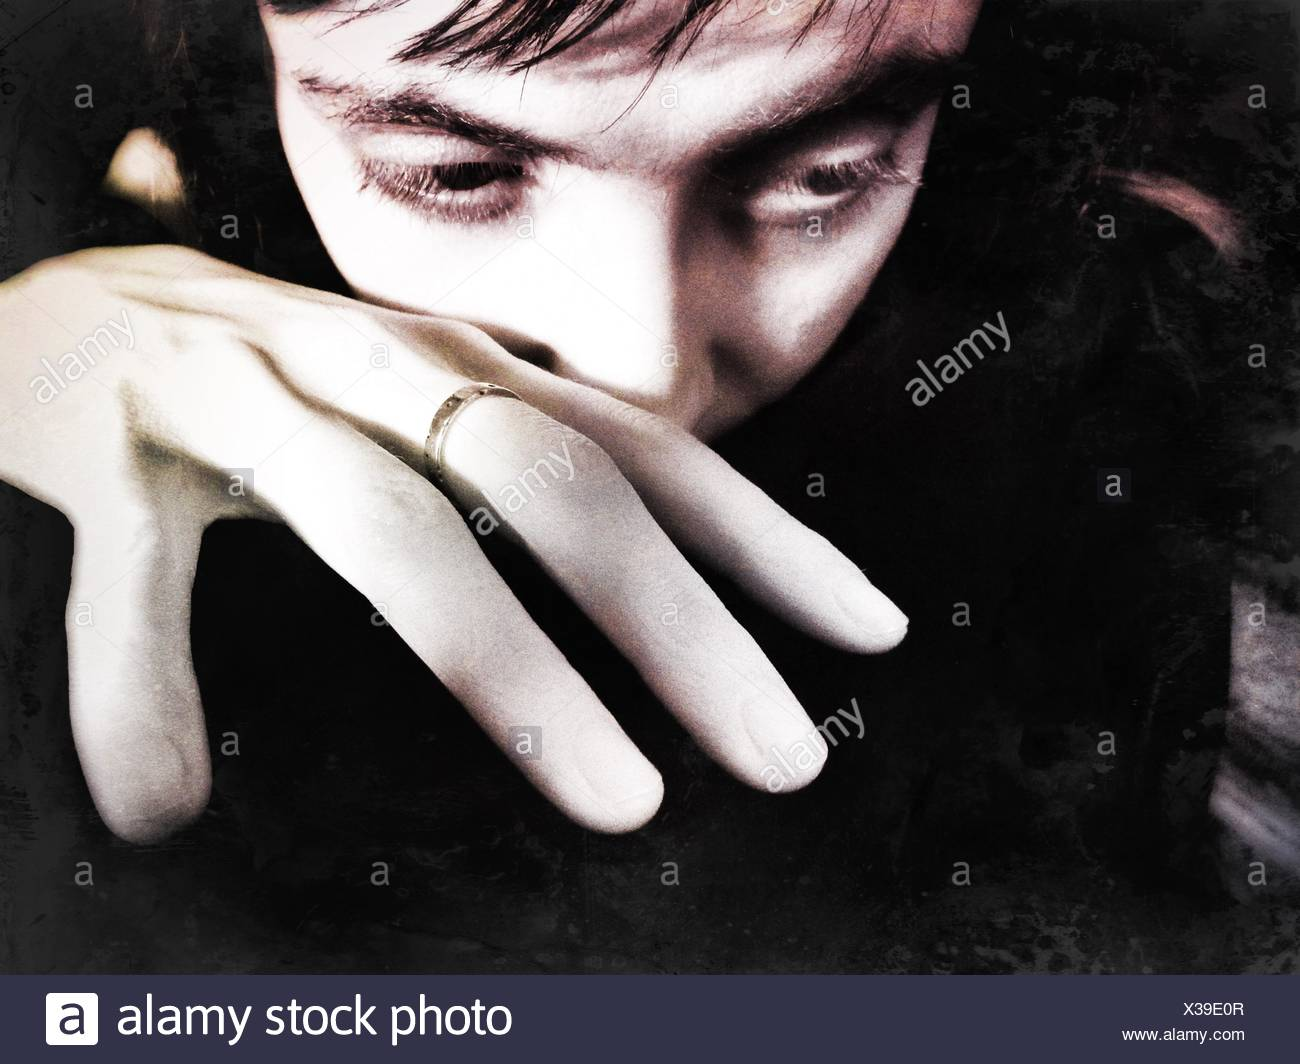 Close-Up Of Woman Looking Down In House - Stock Image